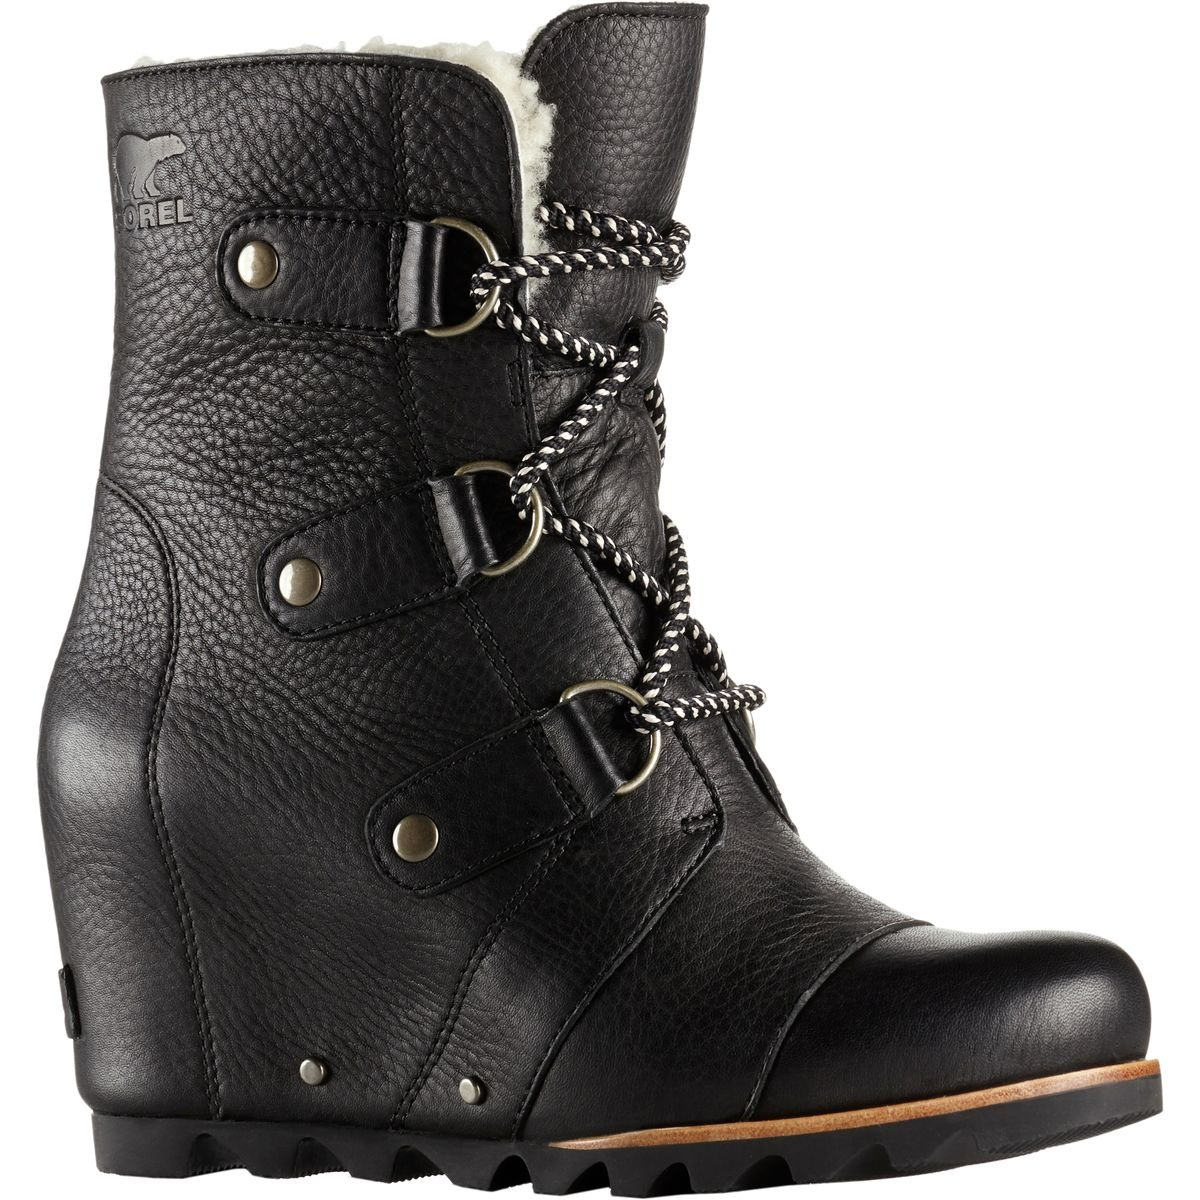 SOREL Women's Joan Of Arctic Wedge Mid Shearling Black/Ancient Fossil 12 B US by SOREL